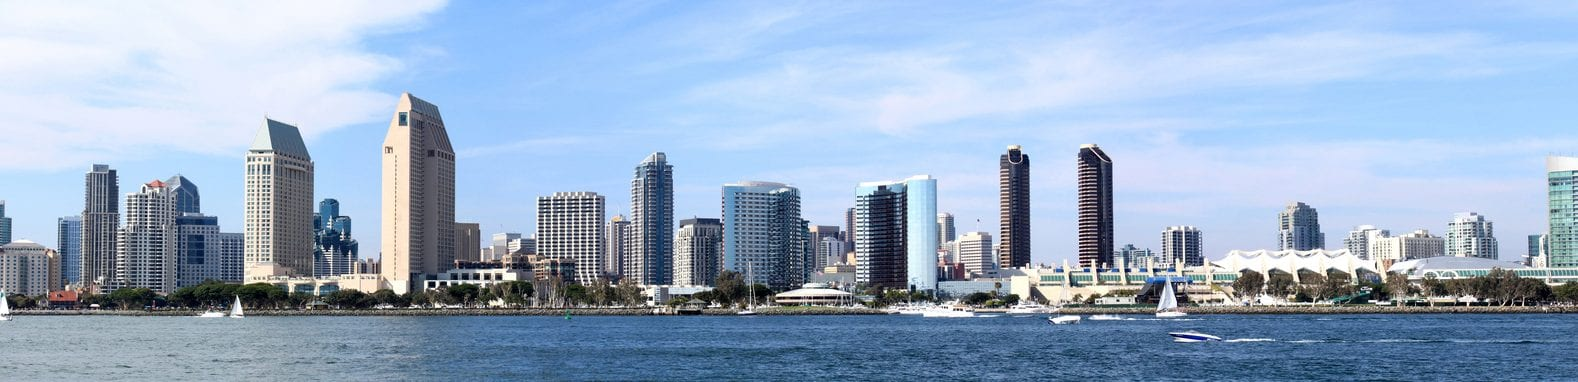 San Diego California Reliable Staffing